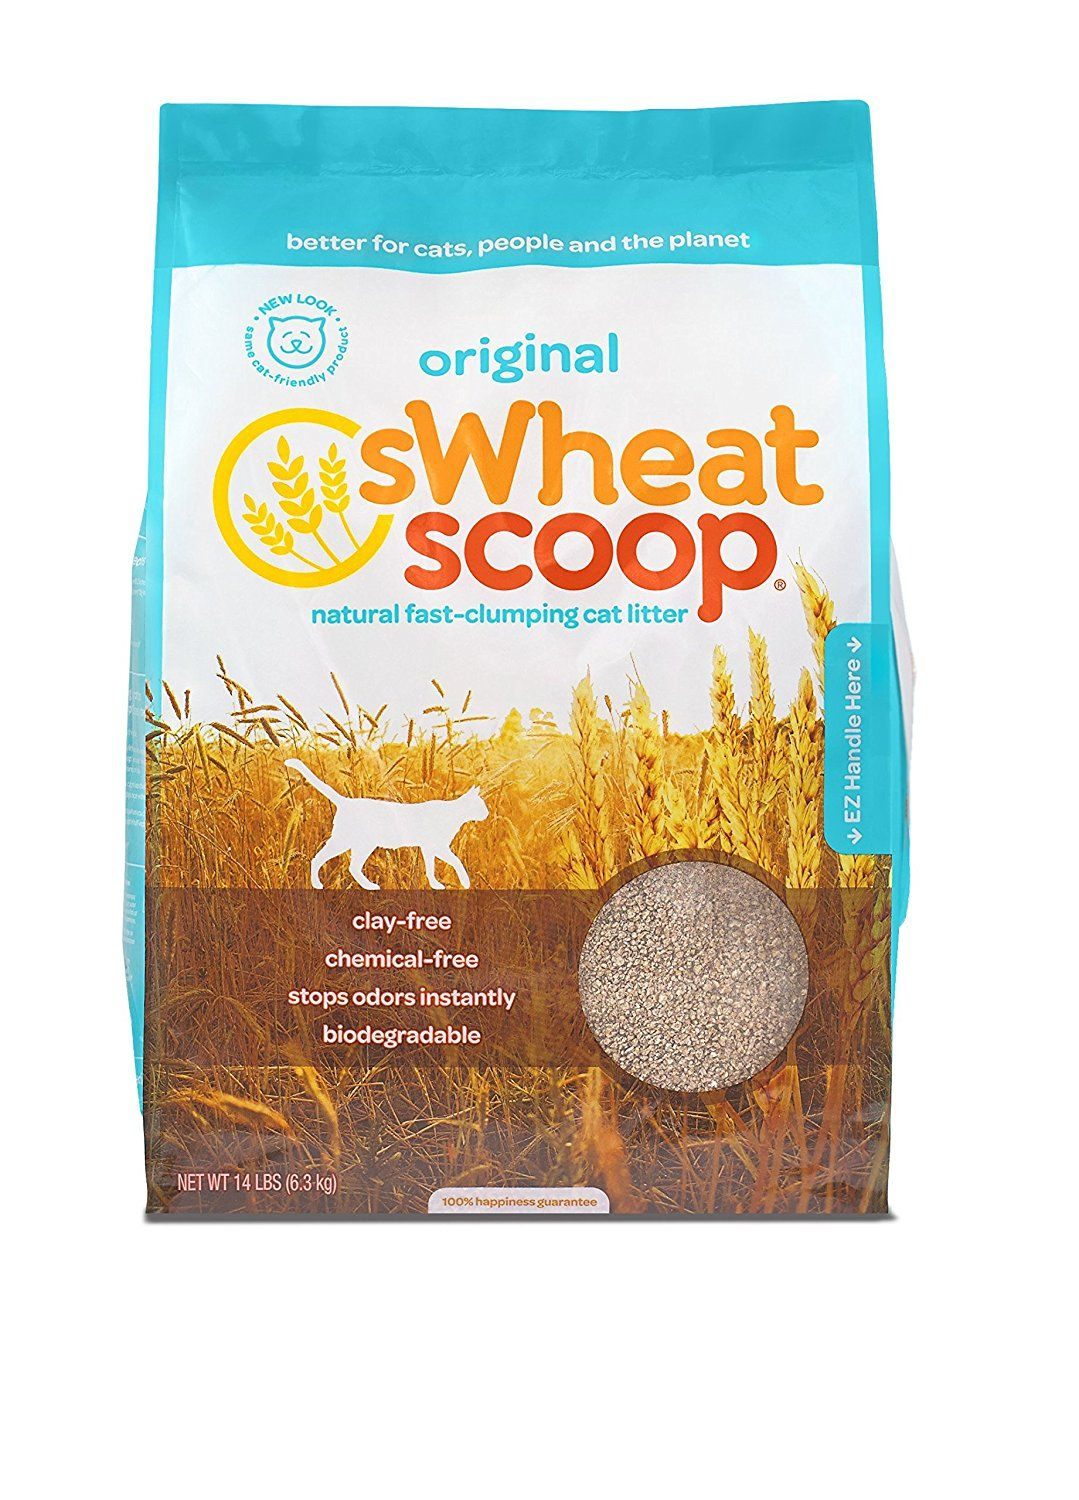 sWheat Scoop FastClumping AllNatural Cat Litter, 14lb